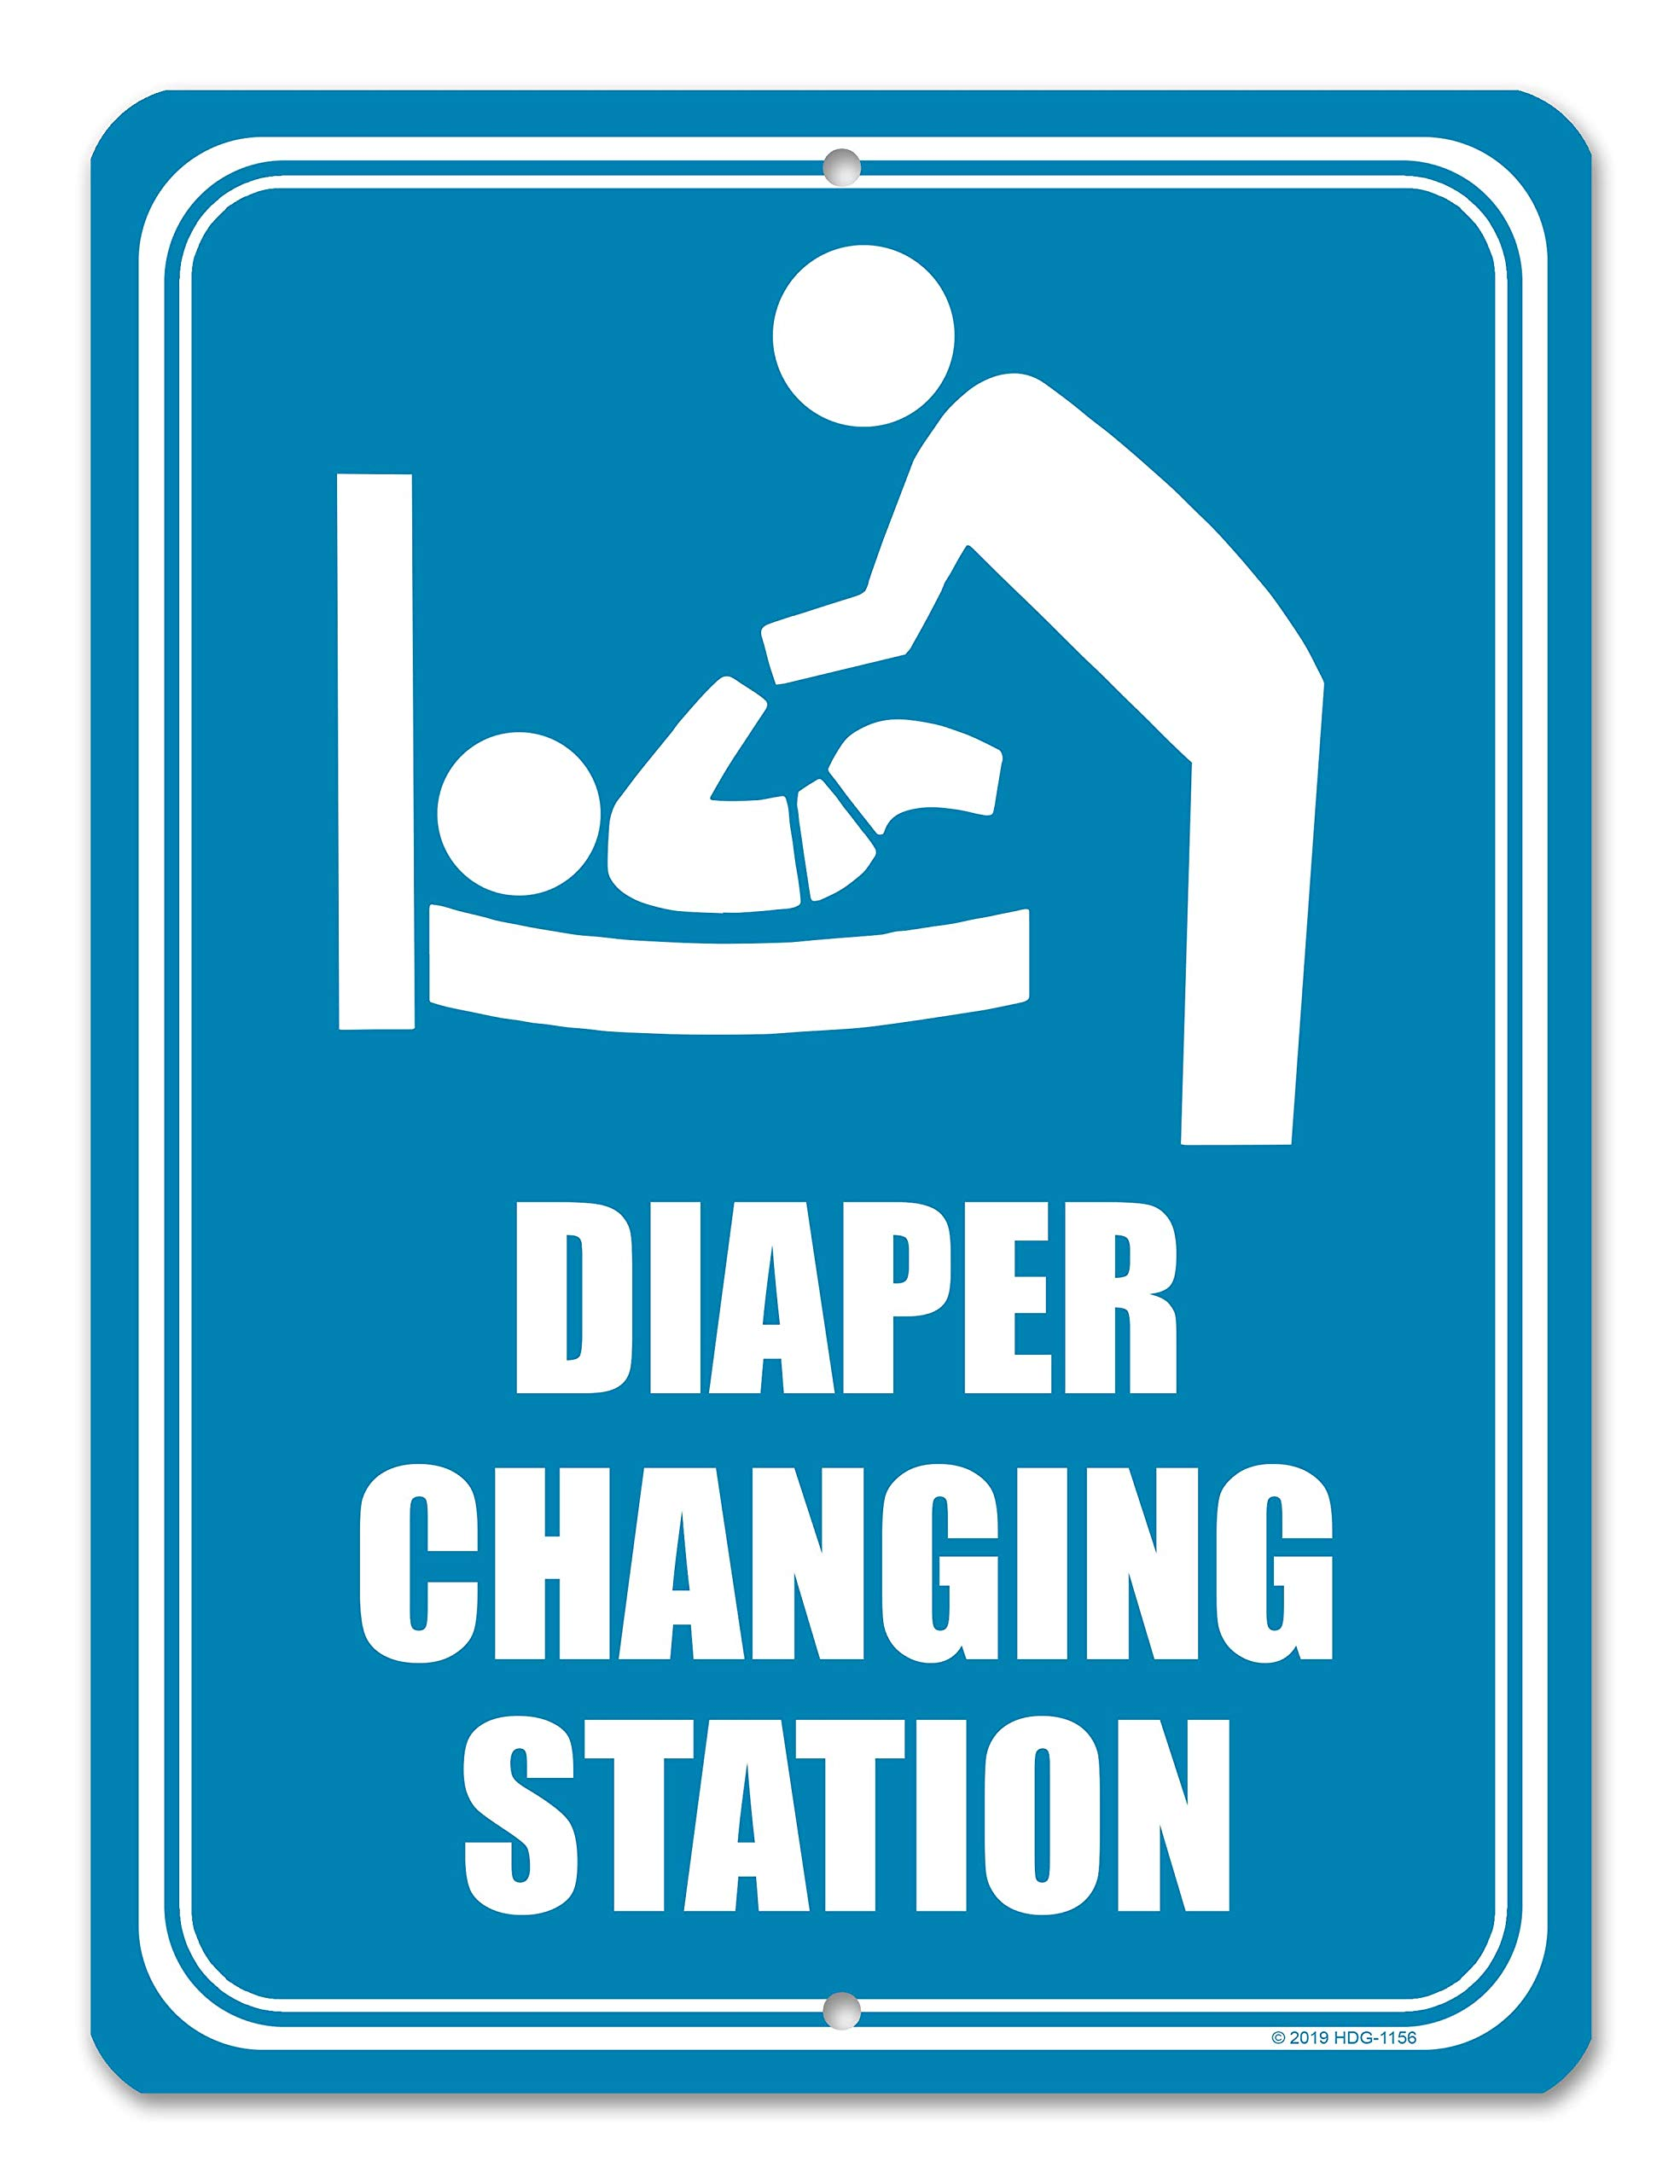 Honey Dew Gifts Restroom Sign, Diaper Changing Station 9 inch by 12 inch Metal Aluminum Baby Changing Station Sign for Business, Made in USA by Honey Dew Gifts